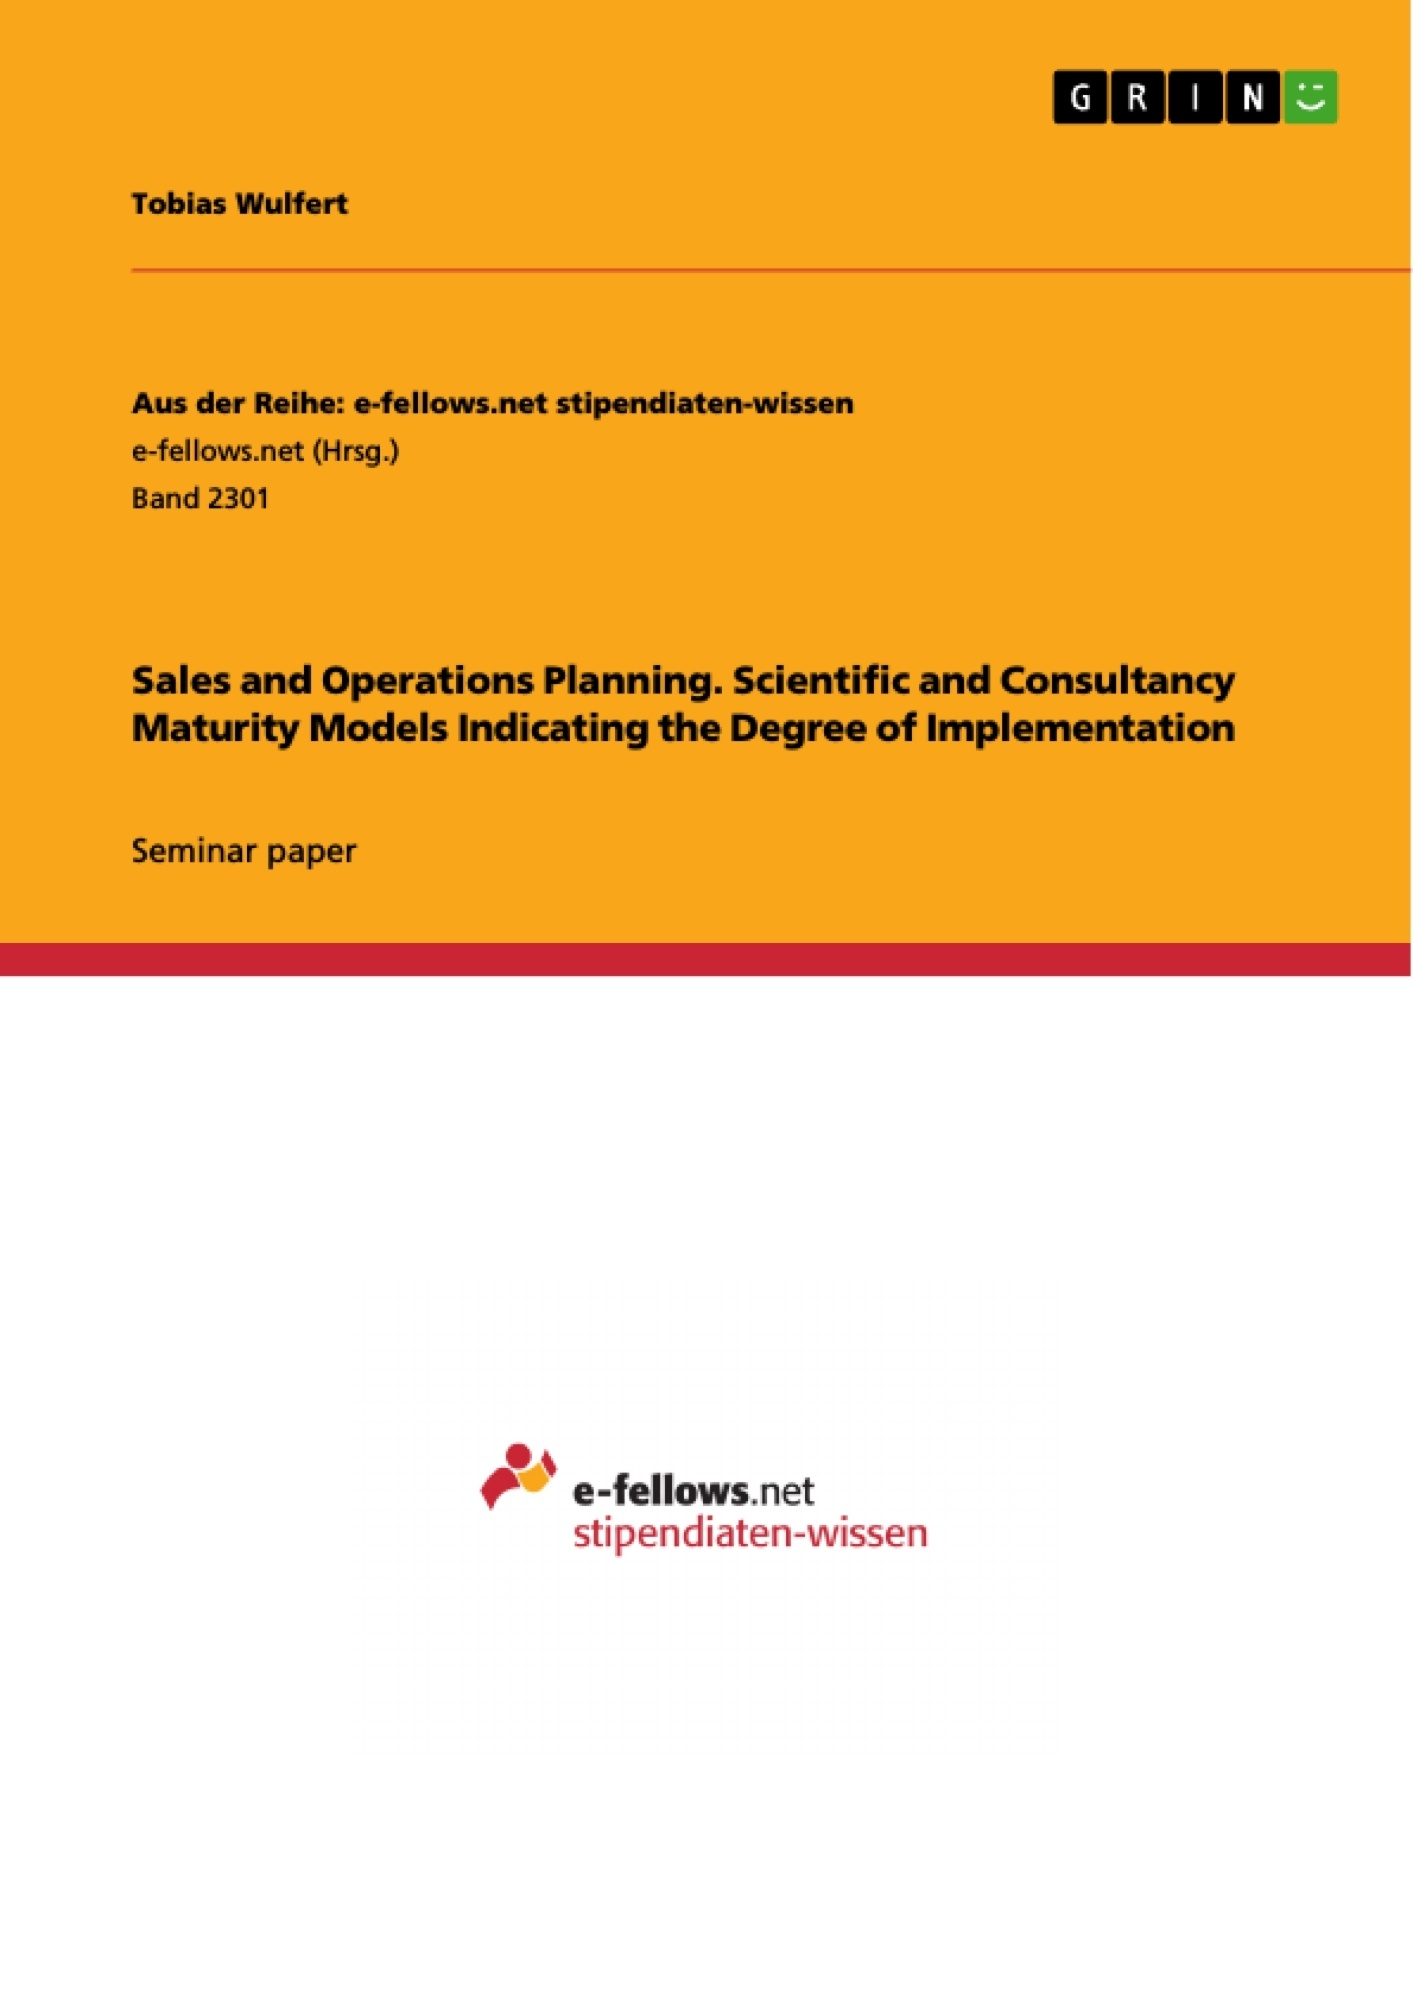 Title: Sales and Operations Planning. Scientific and Consultancy Maturity Models Indicating the Degree of Implementation